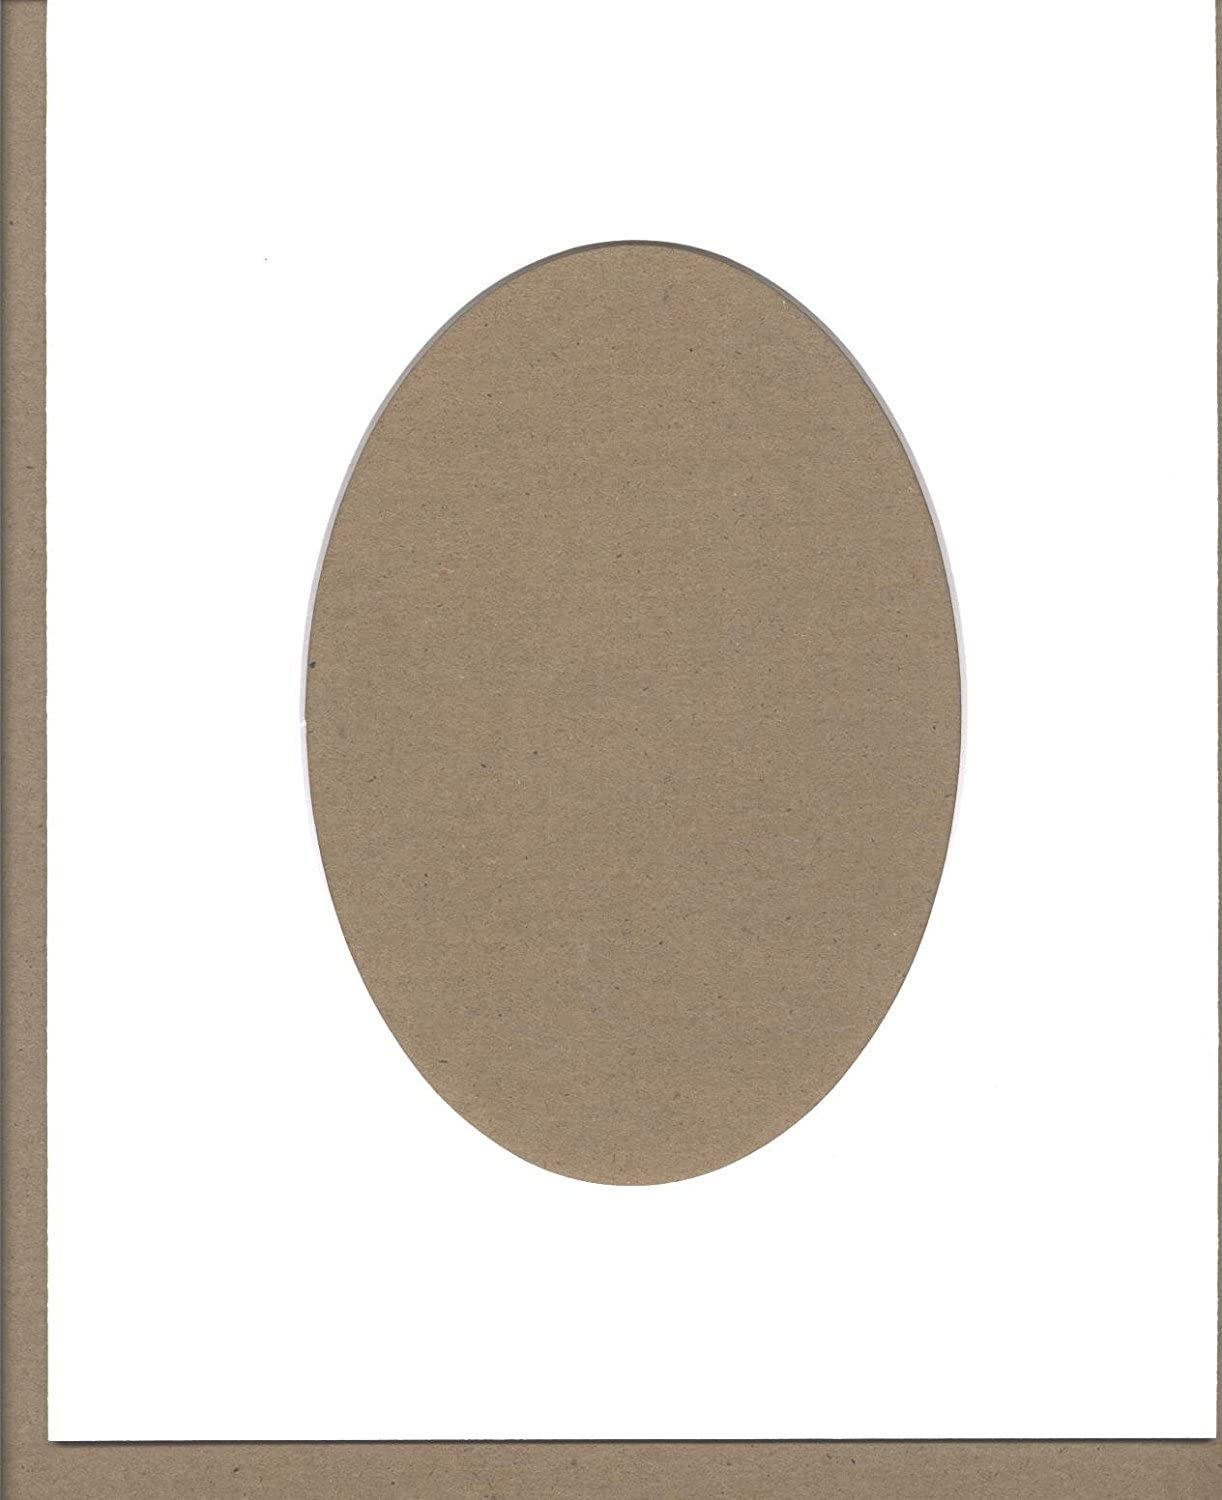 Pack of 5 8x10 White Oval Opening Picture Mats Bevel Cut for 5x7 Pictures